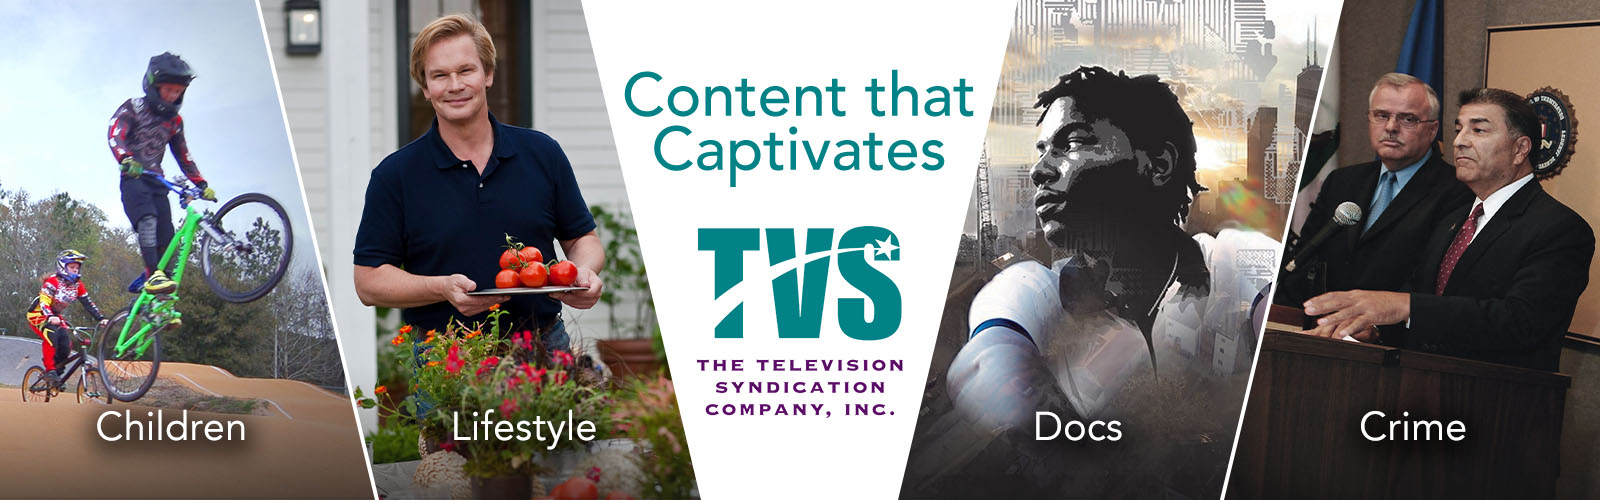 The Television Syndication Company, Inc. (TVS)